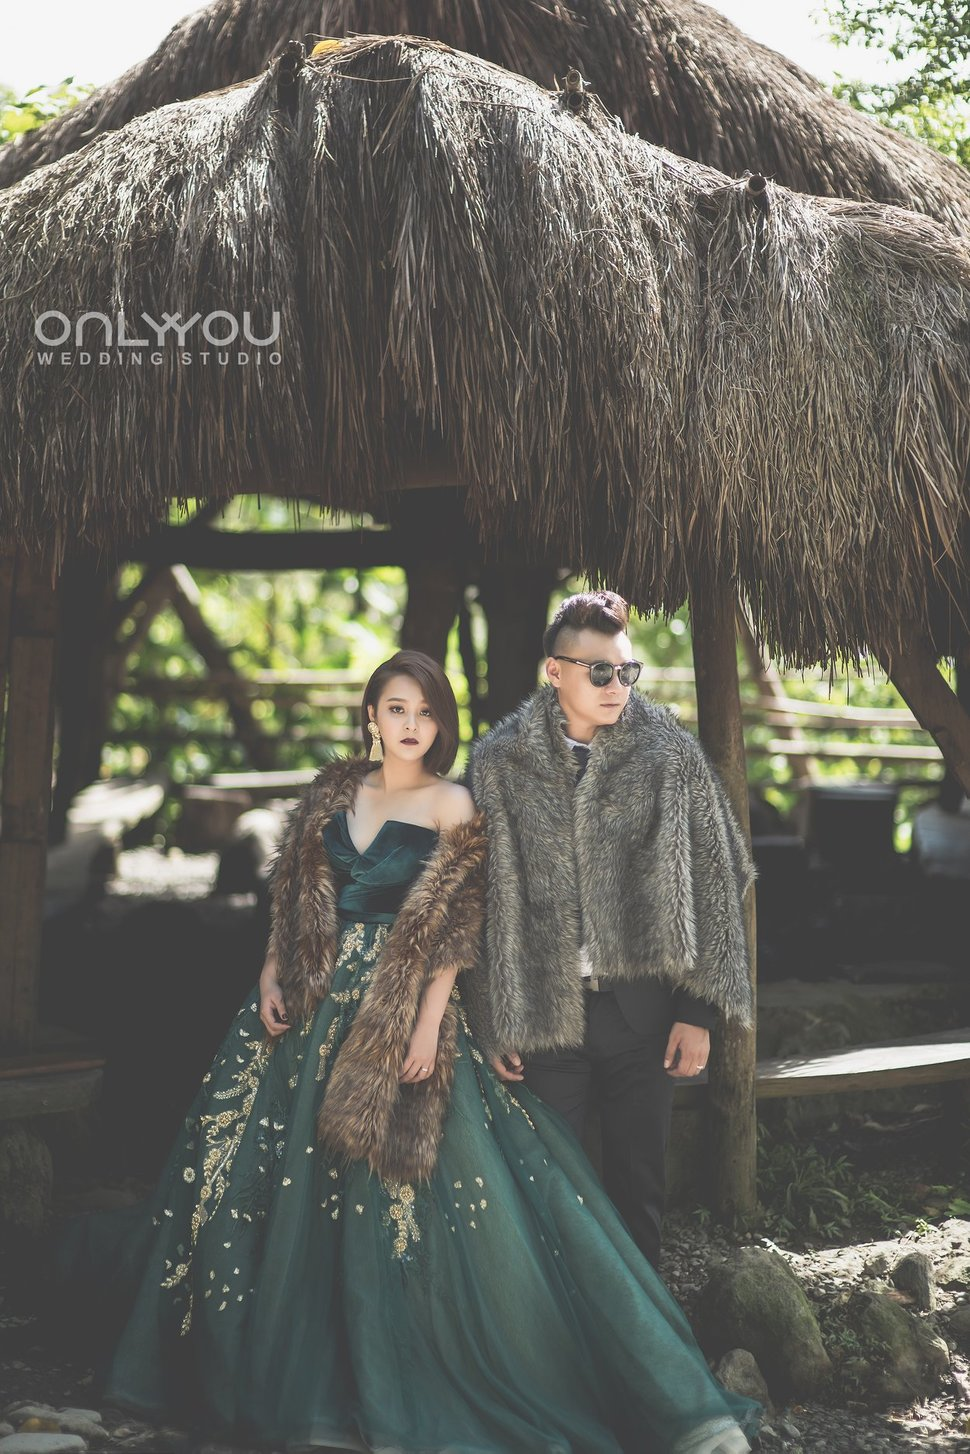 60789751_2156455897743378_4920615375281848320_o - ONLY YOU 唯你婚紗攝影 - 結婚吧